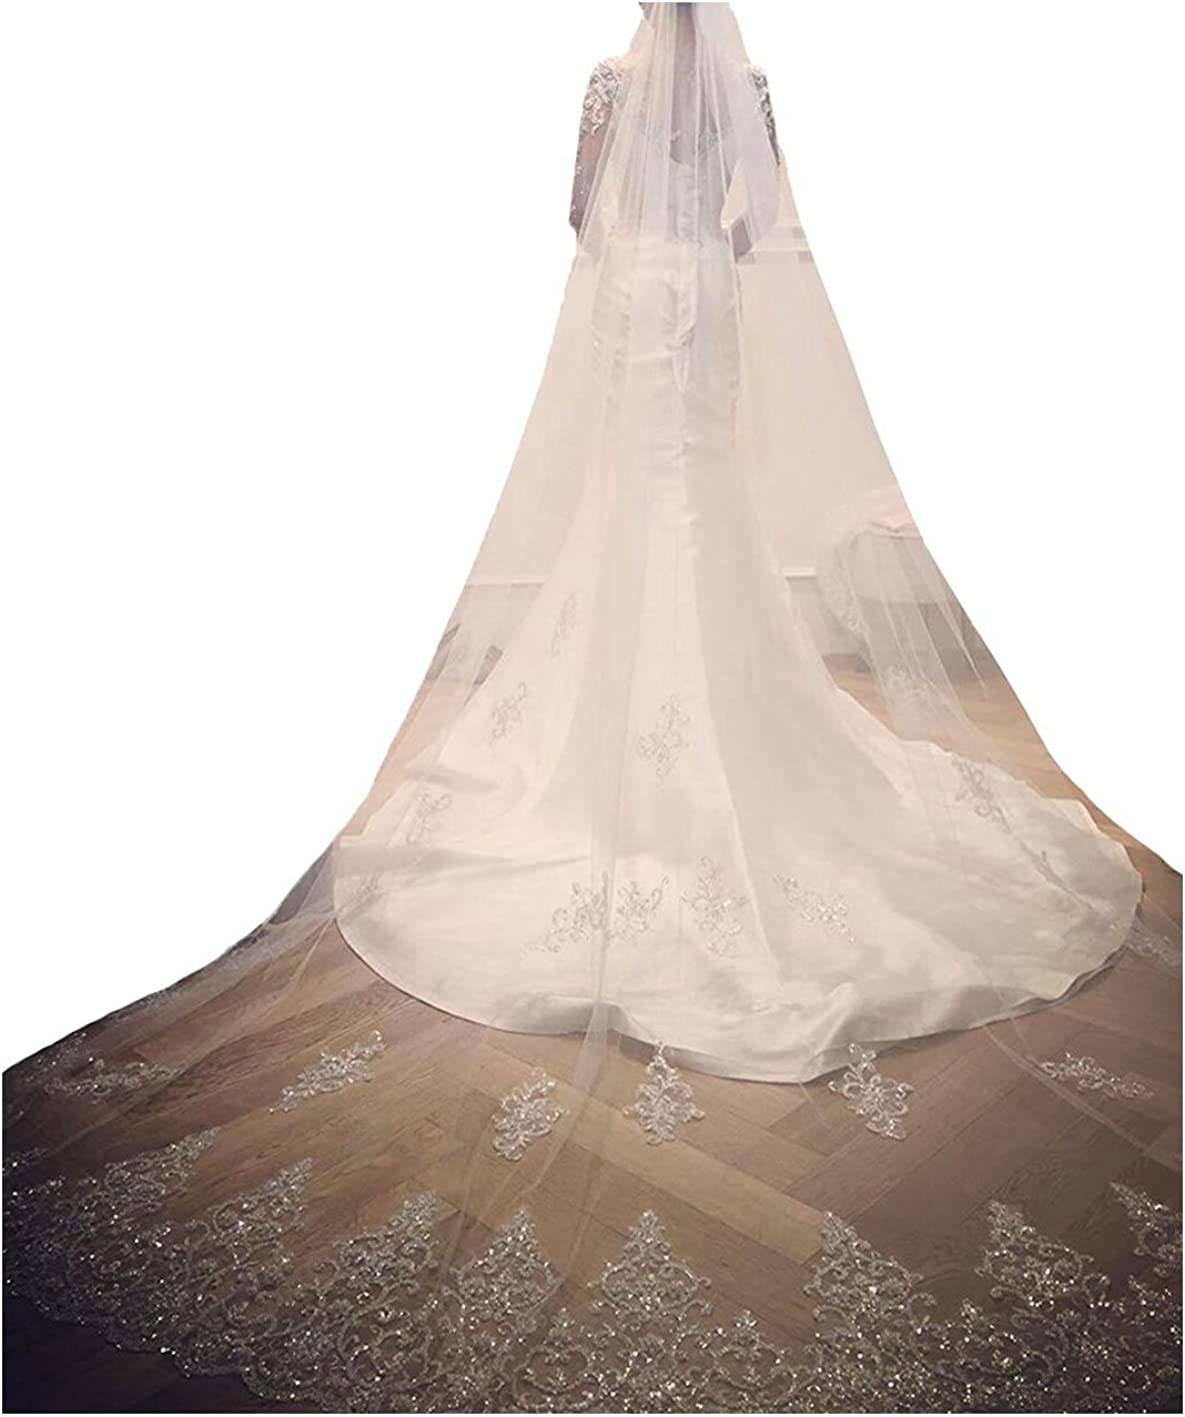 yeoyaw Women Wedding Veils with Shinning Beads Sequins White Ivory Cathedral Bridal Veils Comb